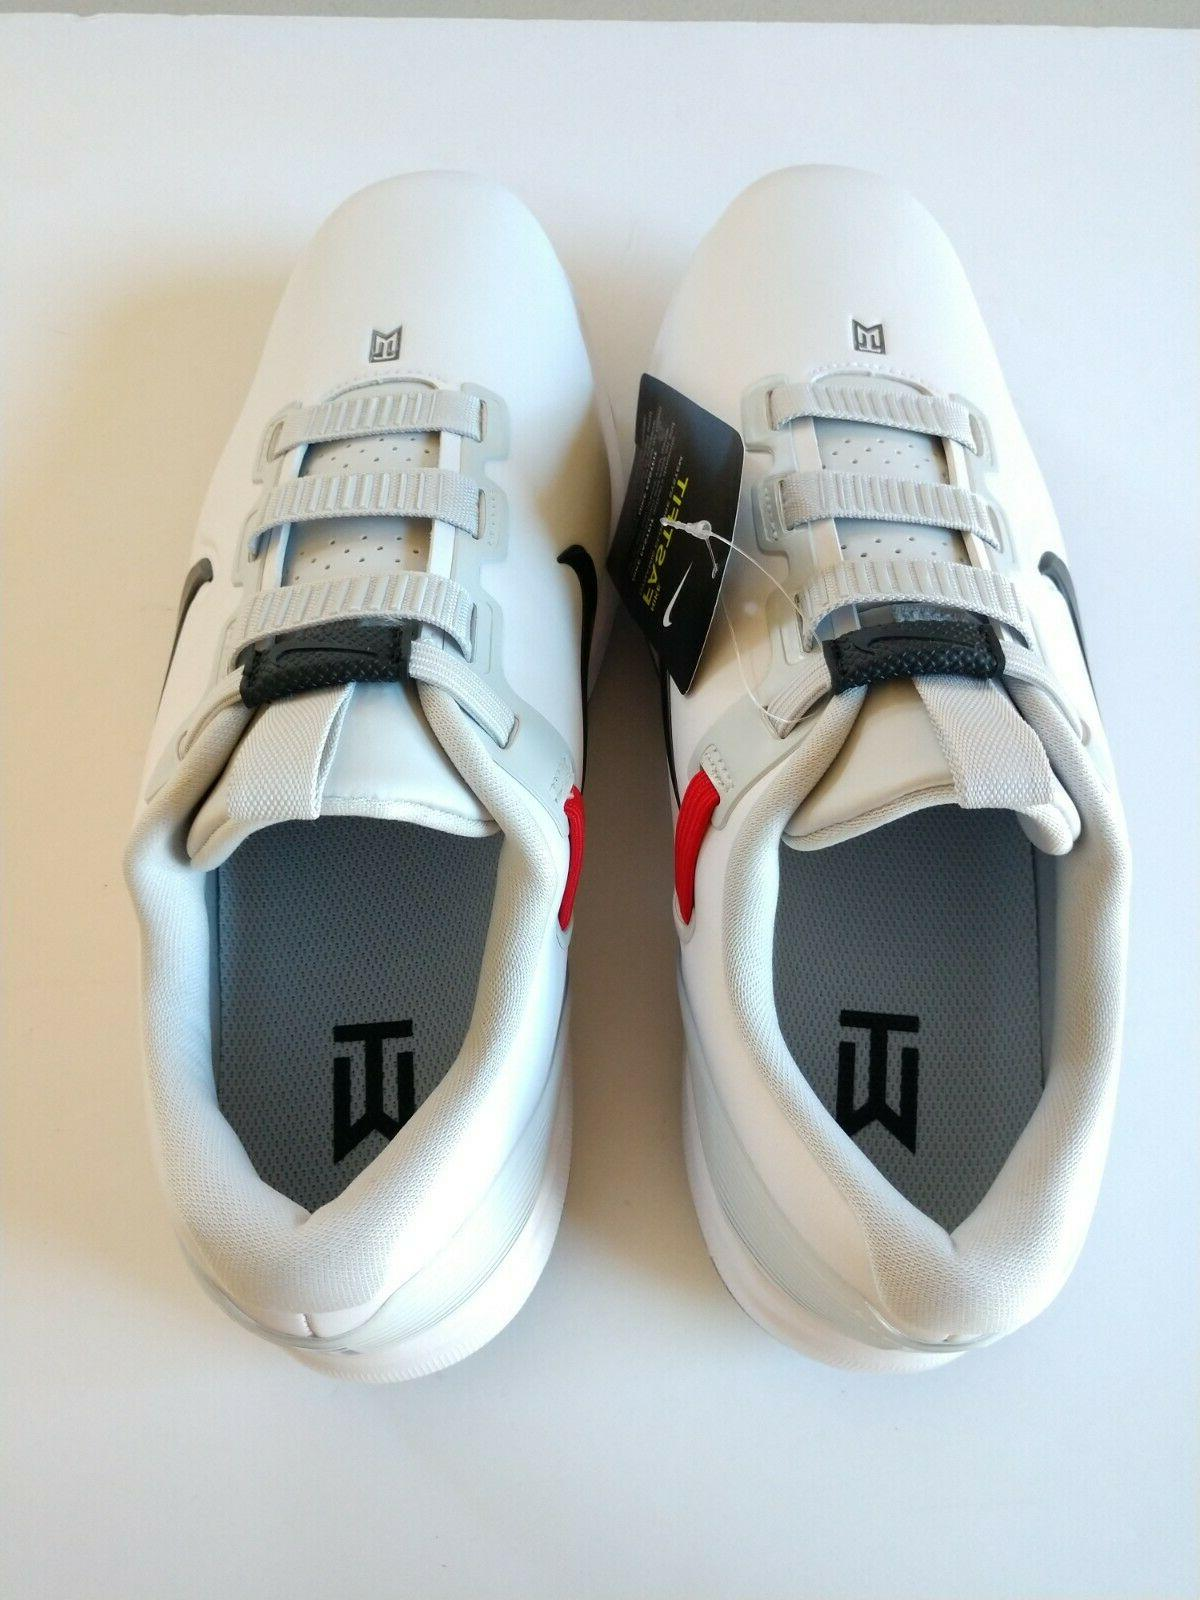 Nike Tiger Woods TW71 Fastfit Shoes White Black CD6300-100